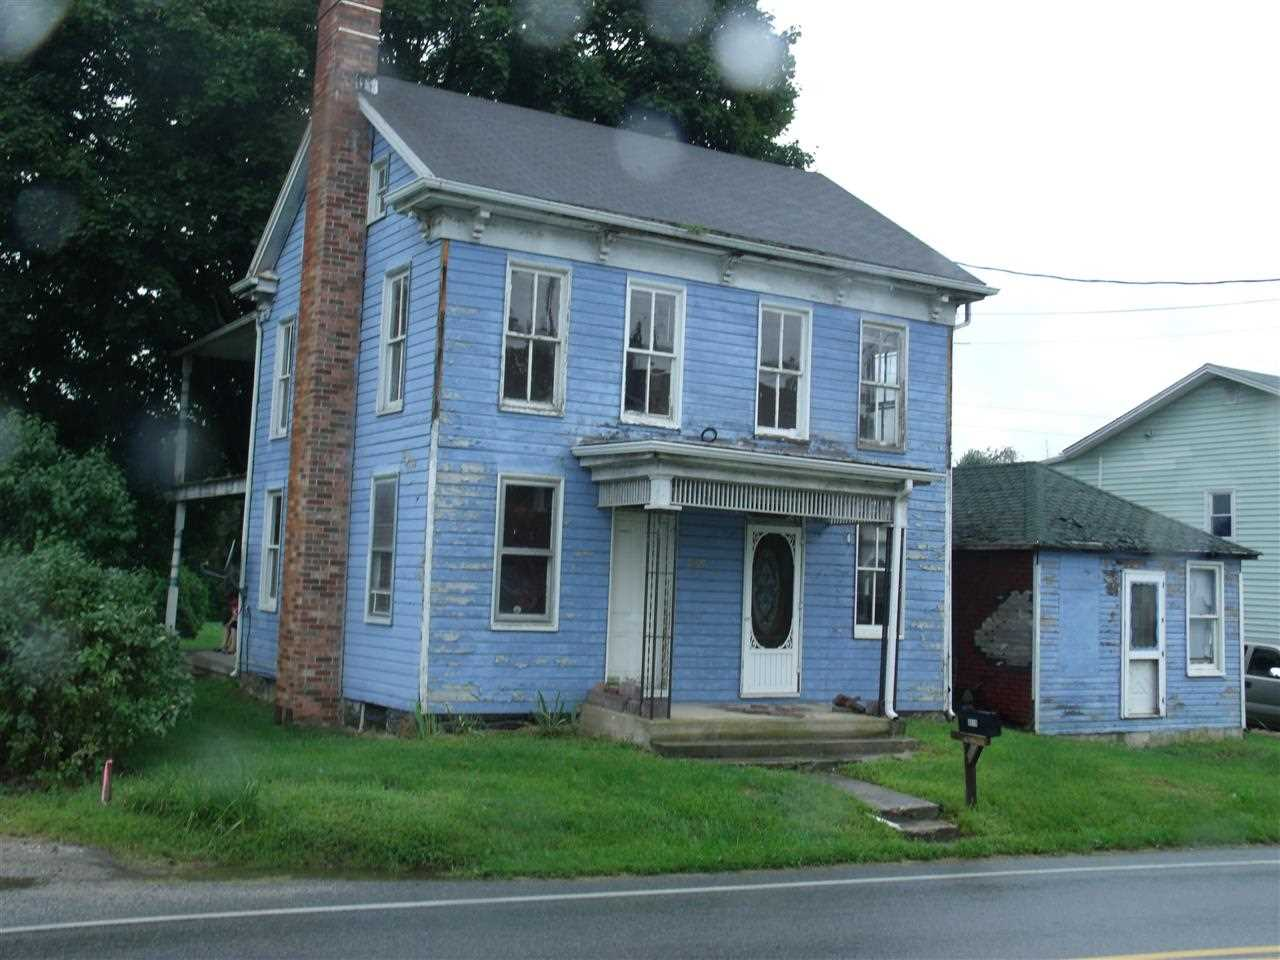 6019 Old Hanover Rd, Spring Grove, PA 17362